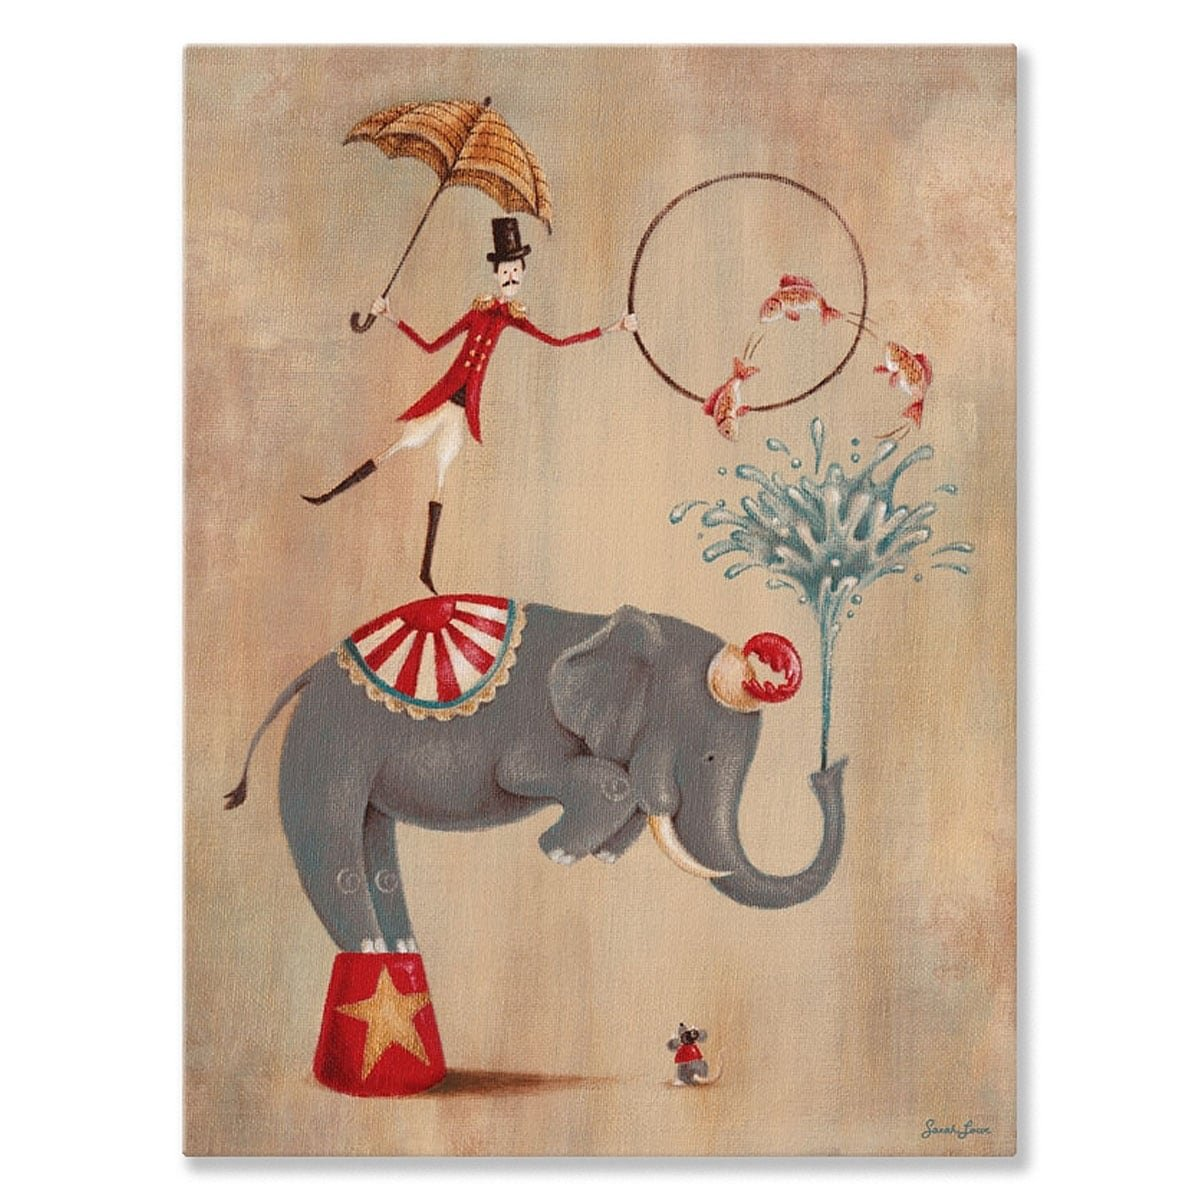 Oopsy Daisy 'Vintage Circus Elephant' by Sarah Lowe Canvas Wall Art - 10 x 14!